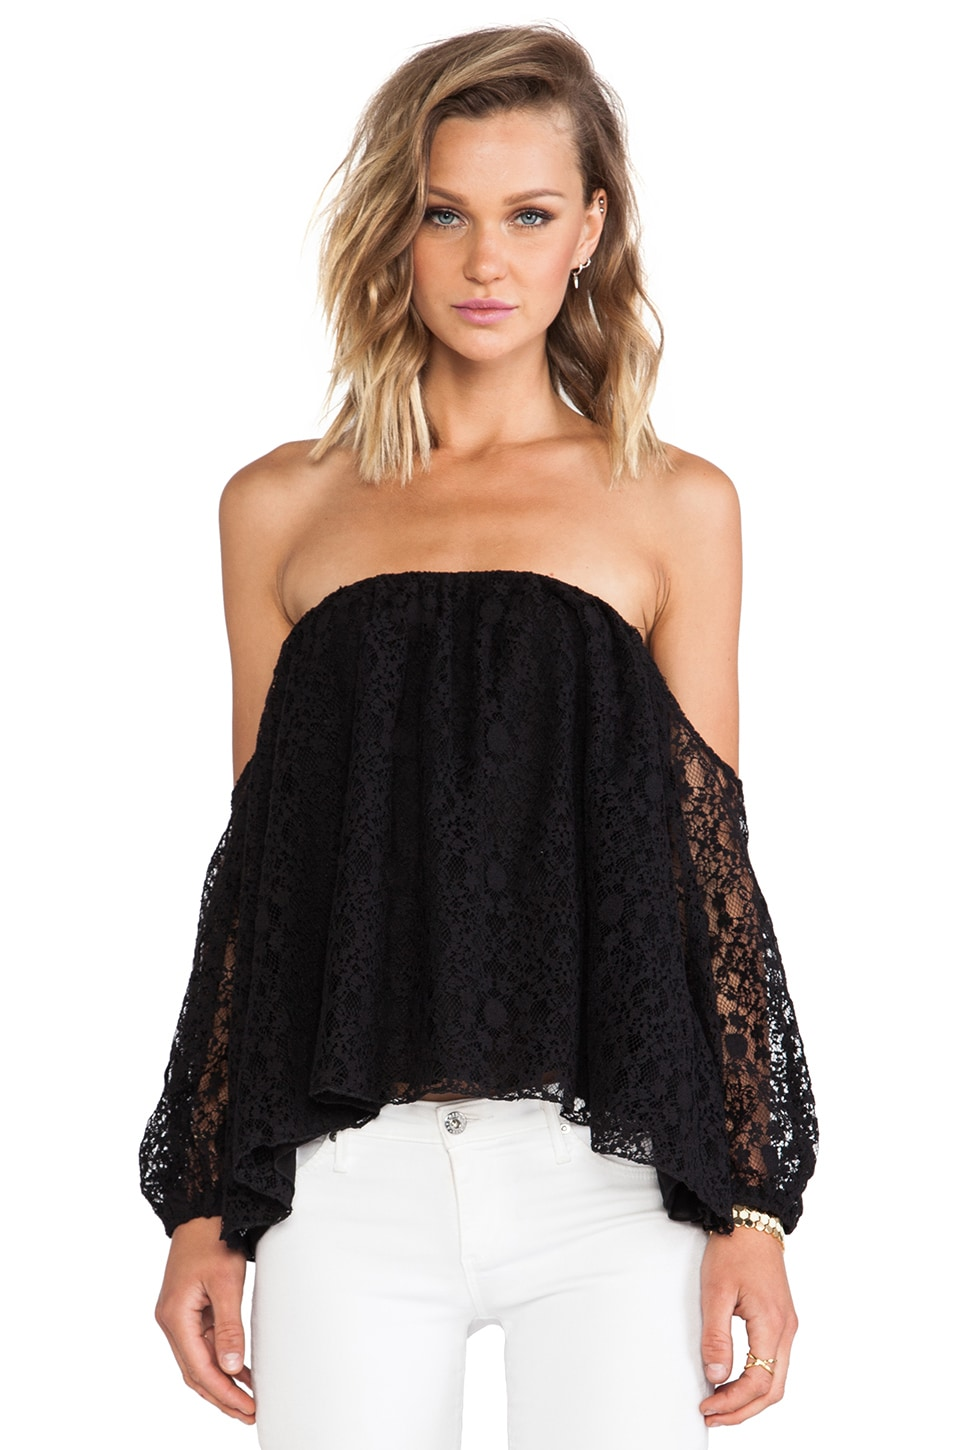 Boulee Audrey Top in Black Lace